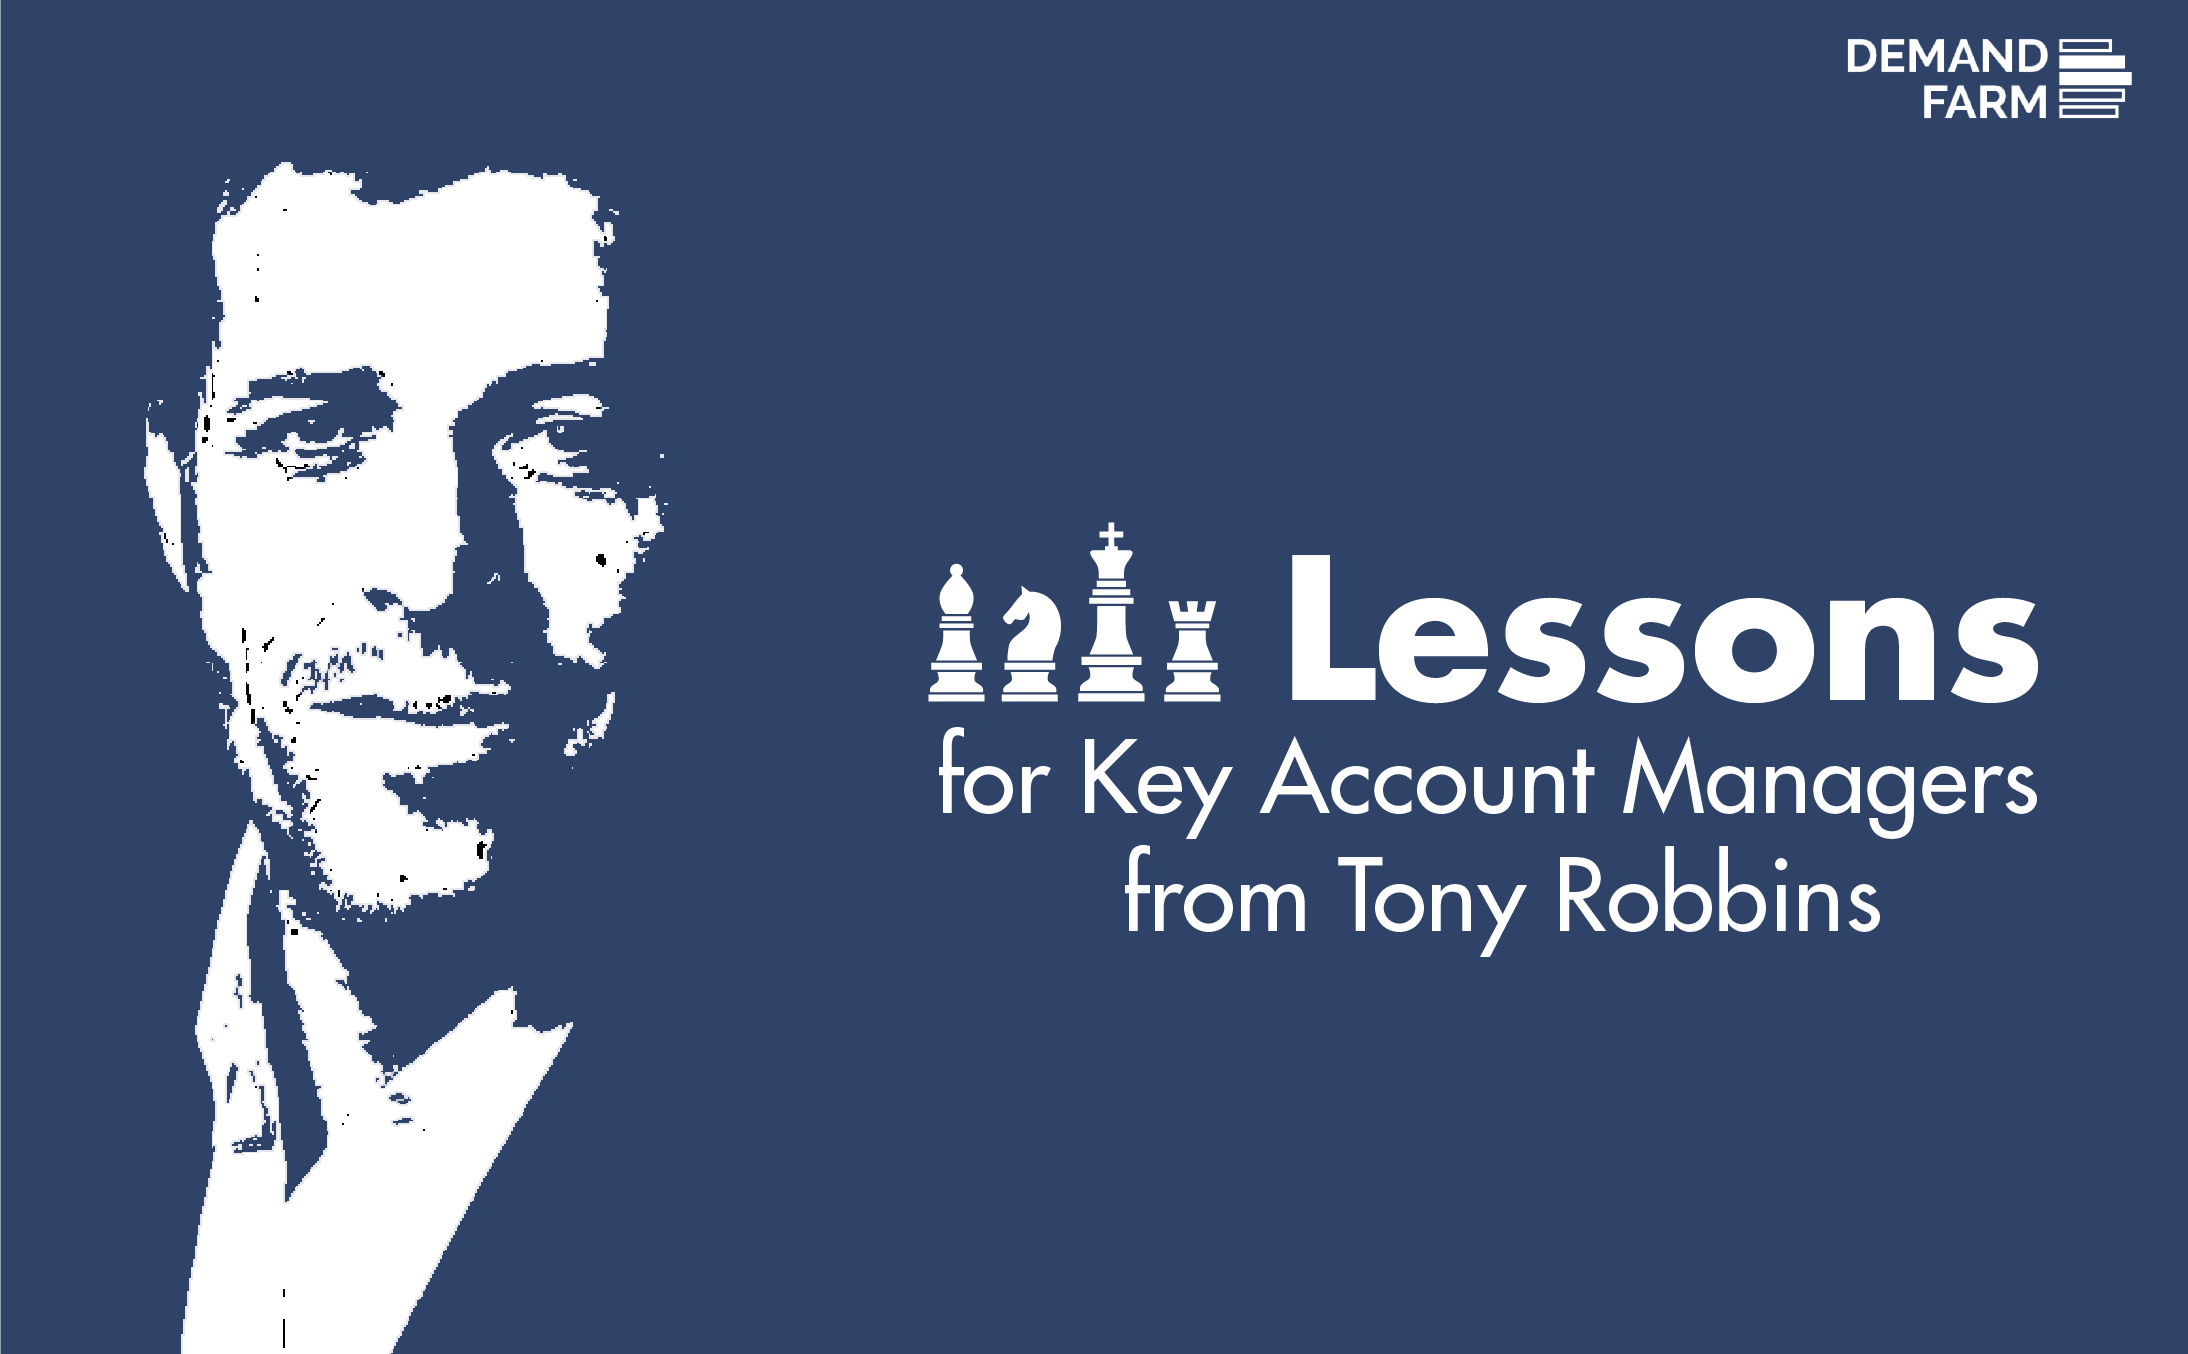 4 Lessons for Key Account Managers from Tony Robbins